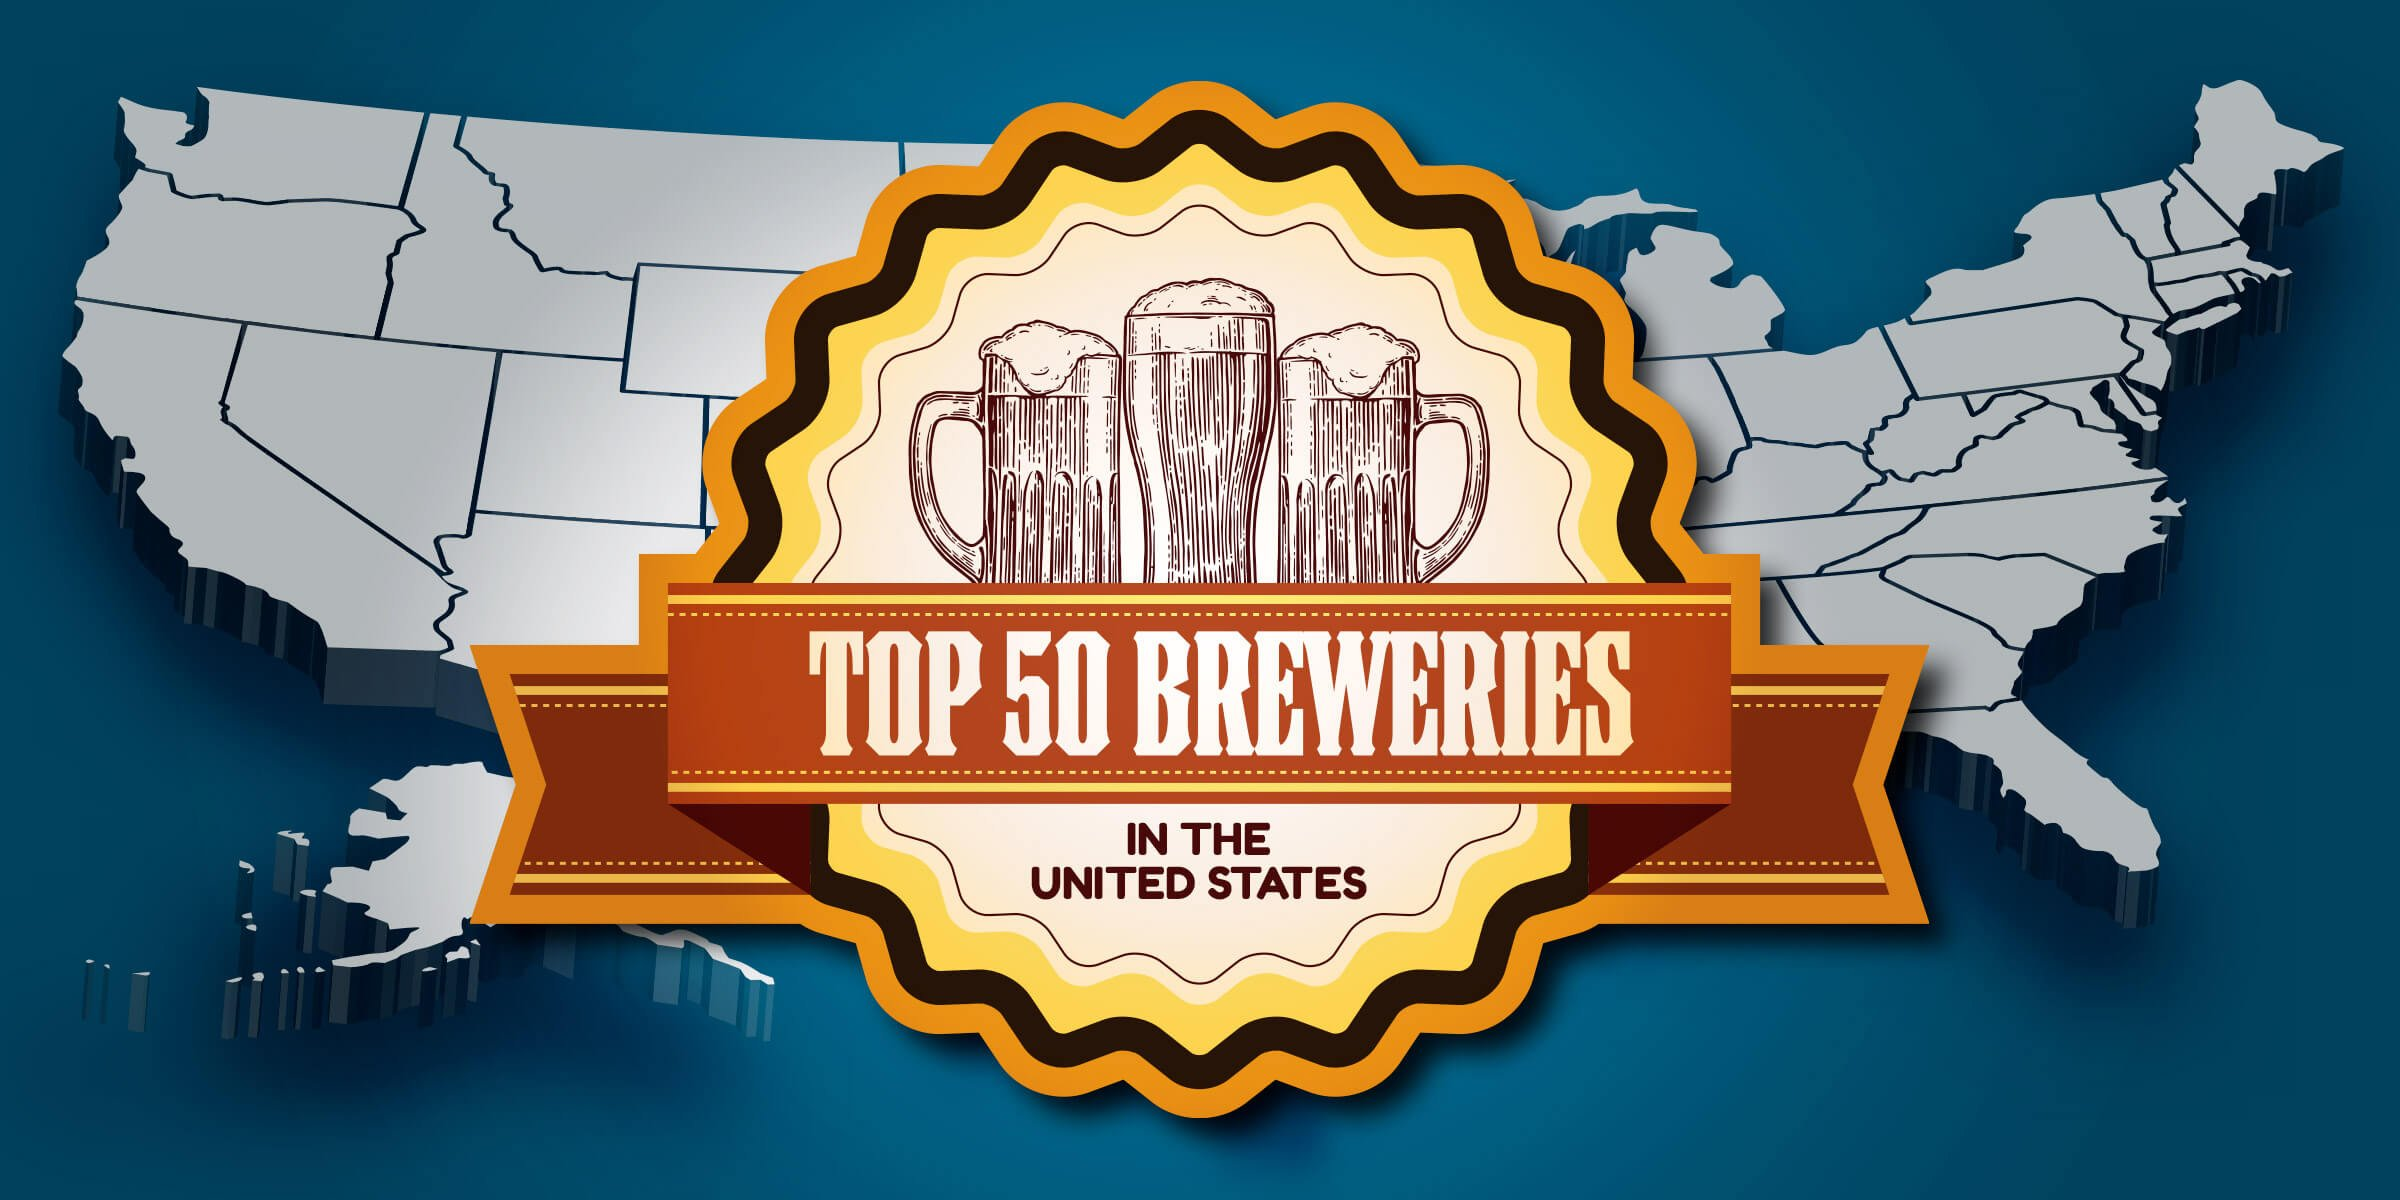 Top 50 Breweries in the United States by Sales Volume